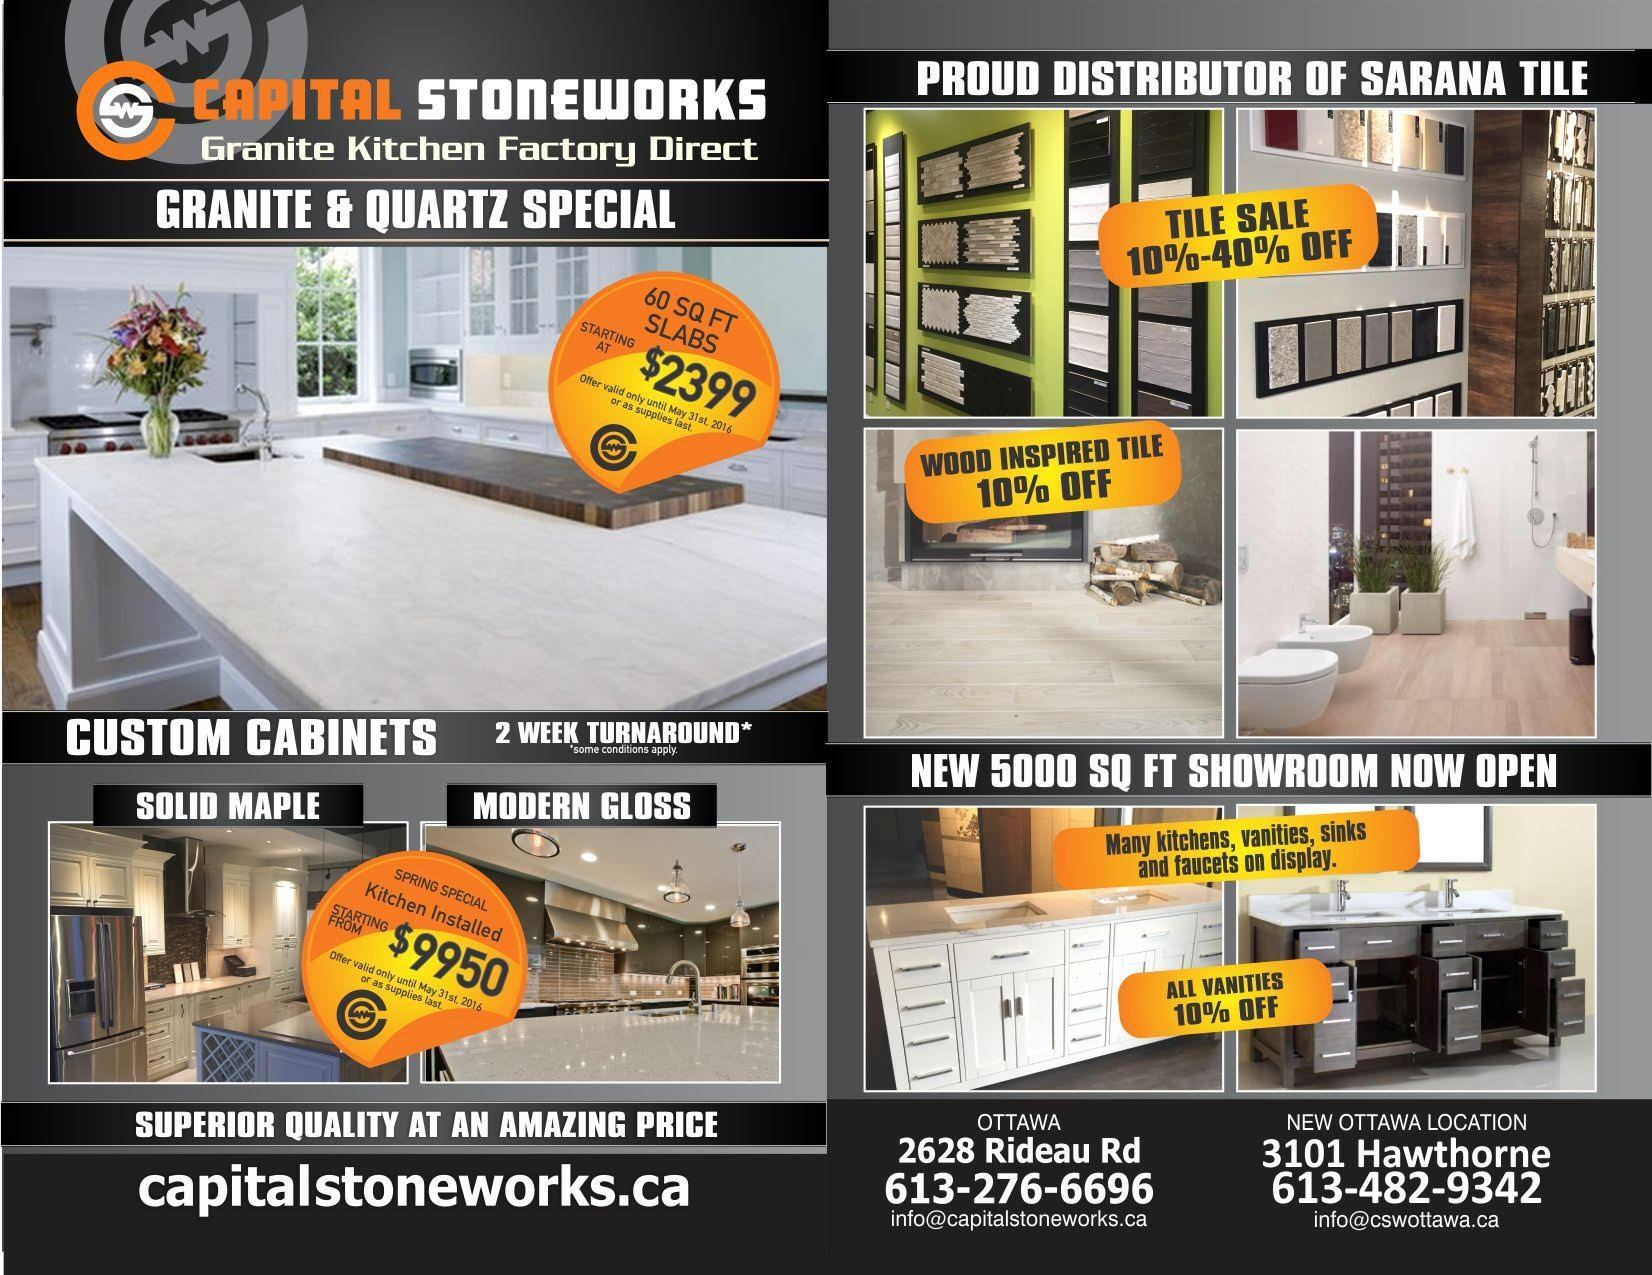 Custom Bathroom Vanities Ottawa granite & quartz countertops in ottawa - capital stoneworks